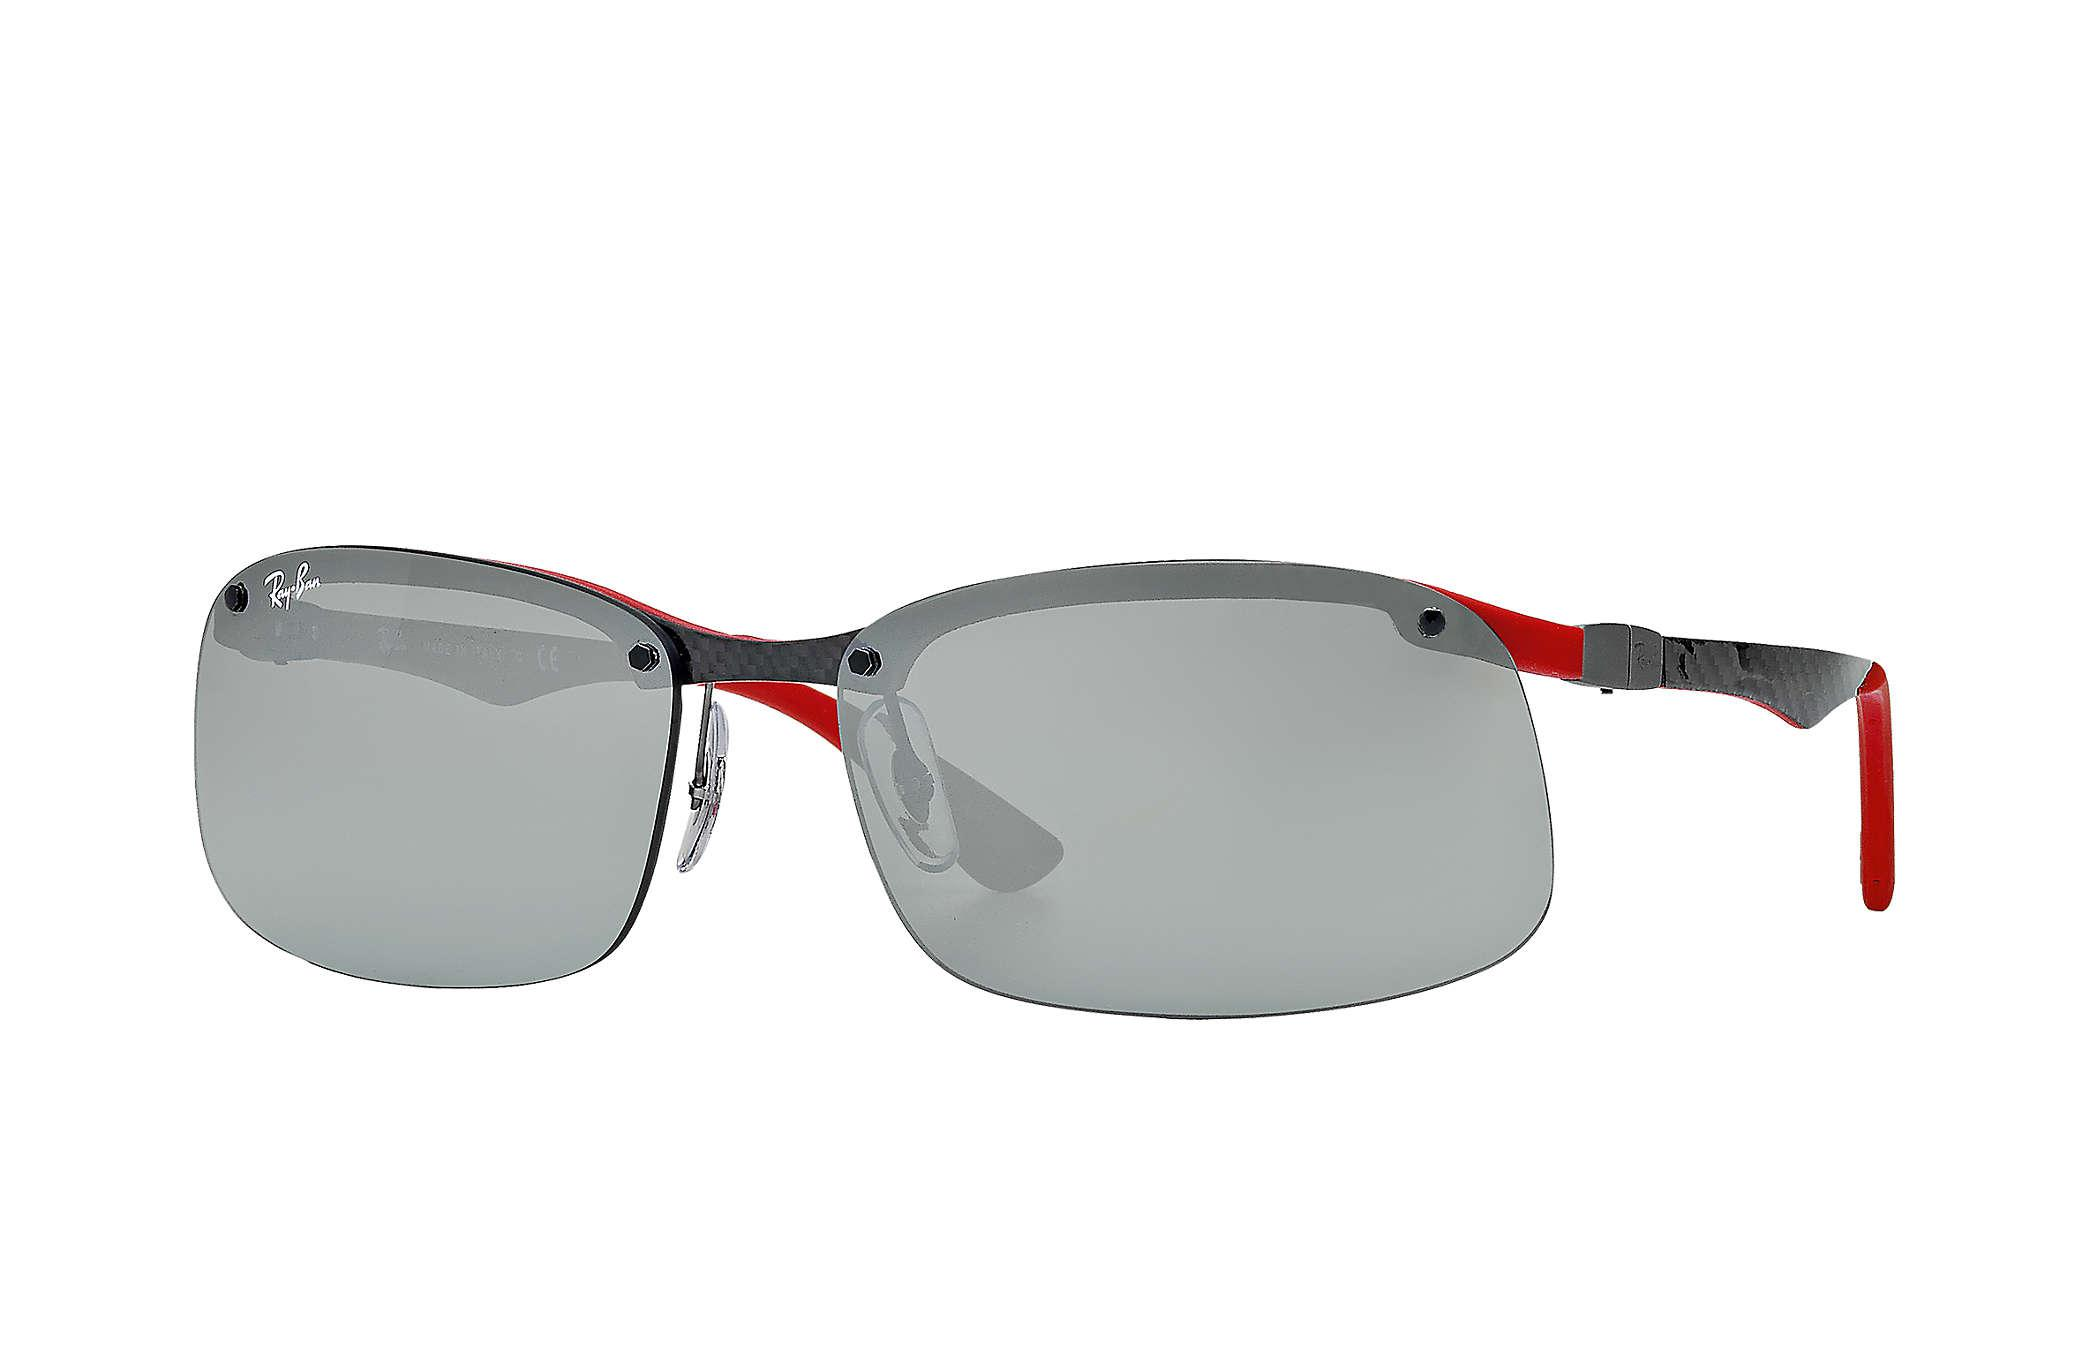 e21233cc11f Lyst - Ray-Ban Rb8314 in Gray for Men